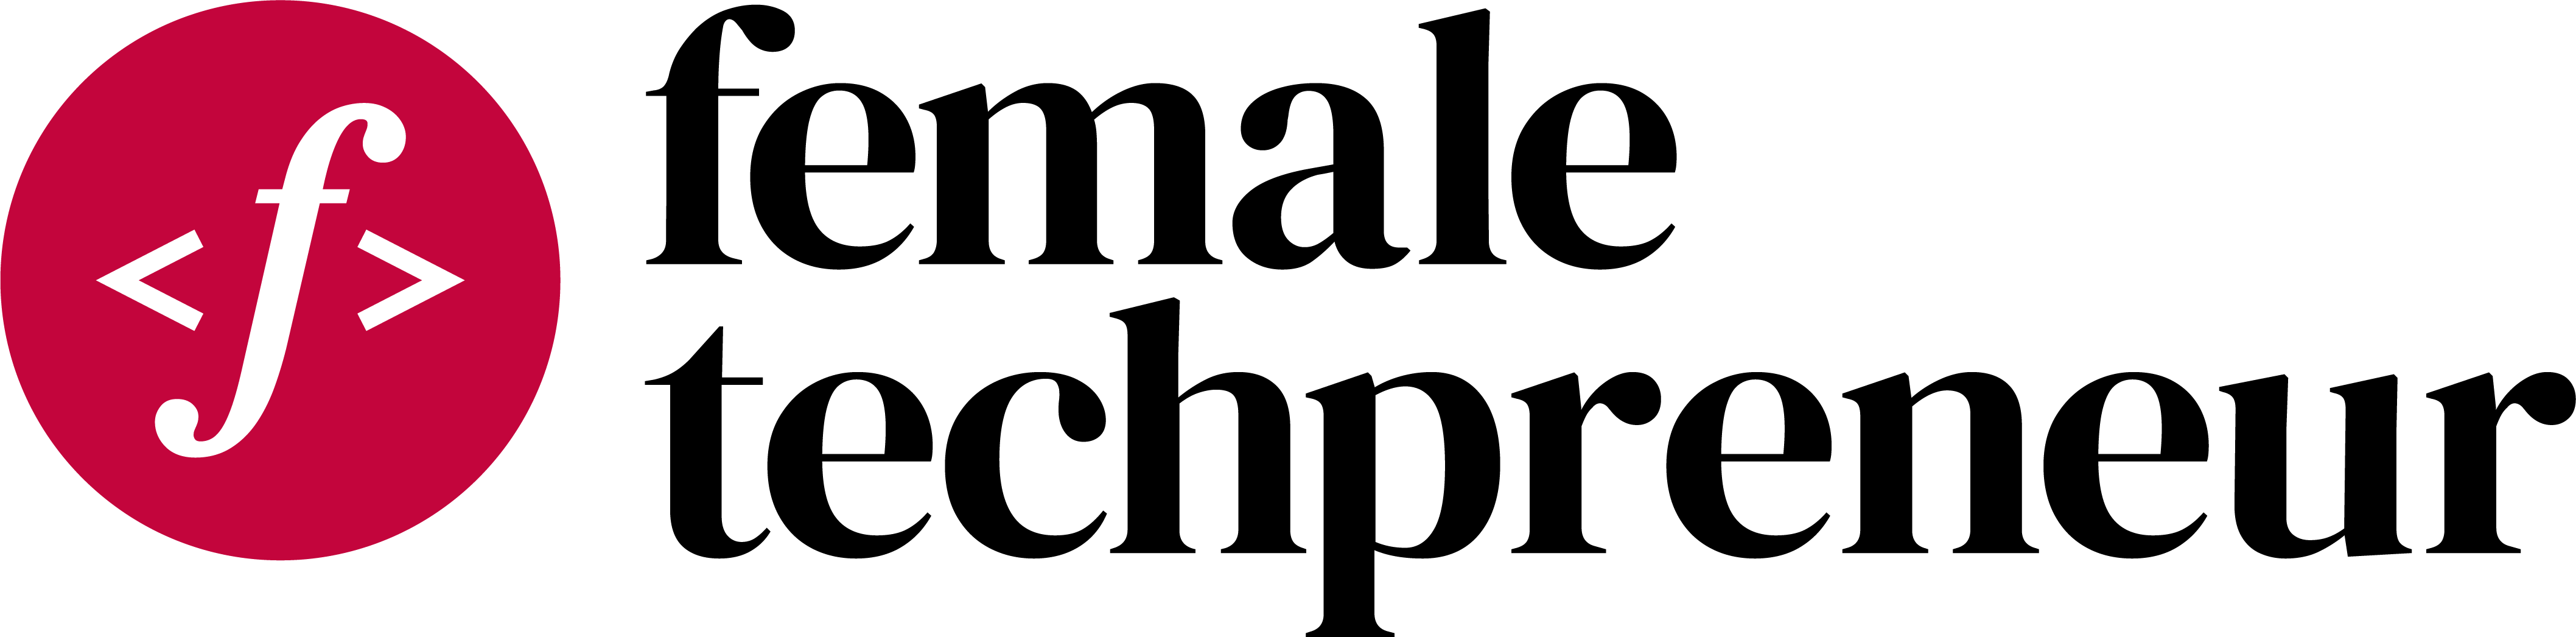 Female Techpreneur Logo